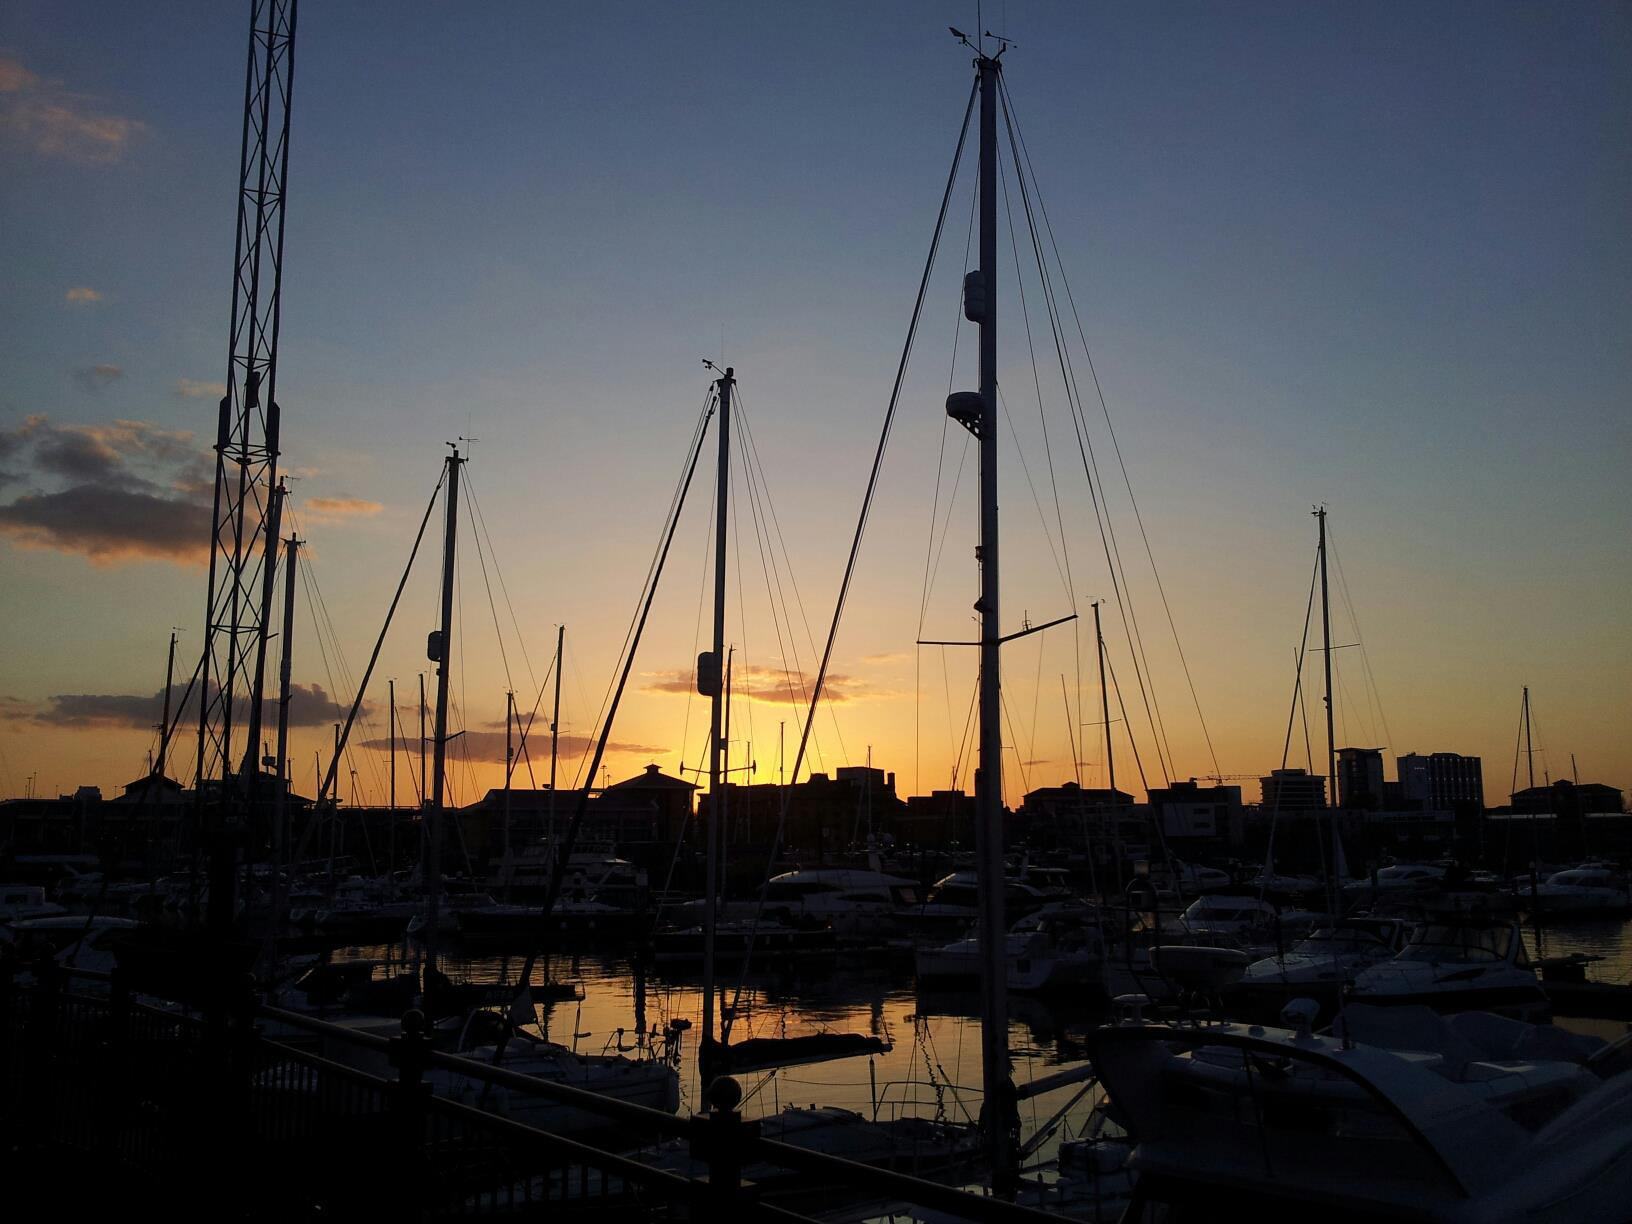 I took a photo of the sunset over Southampton marina (Ocean Village ...